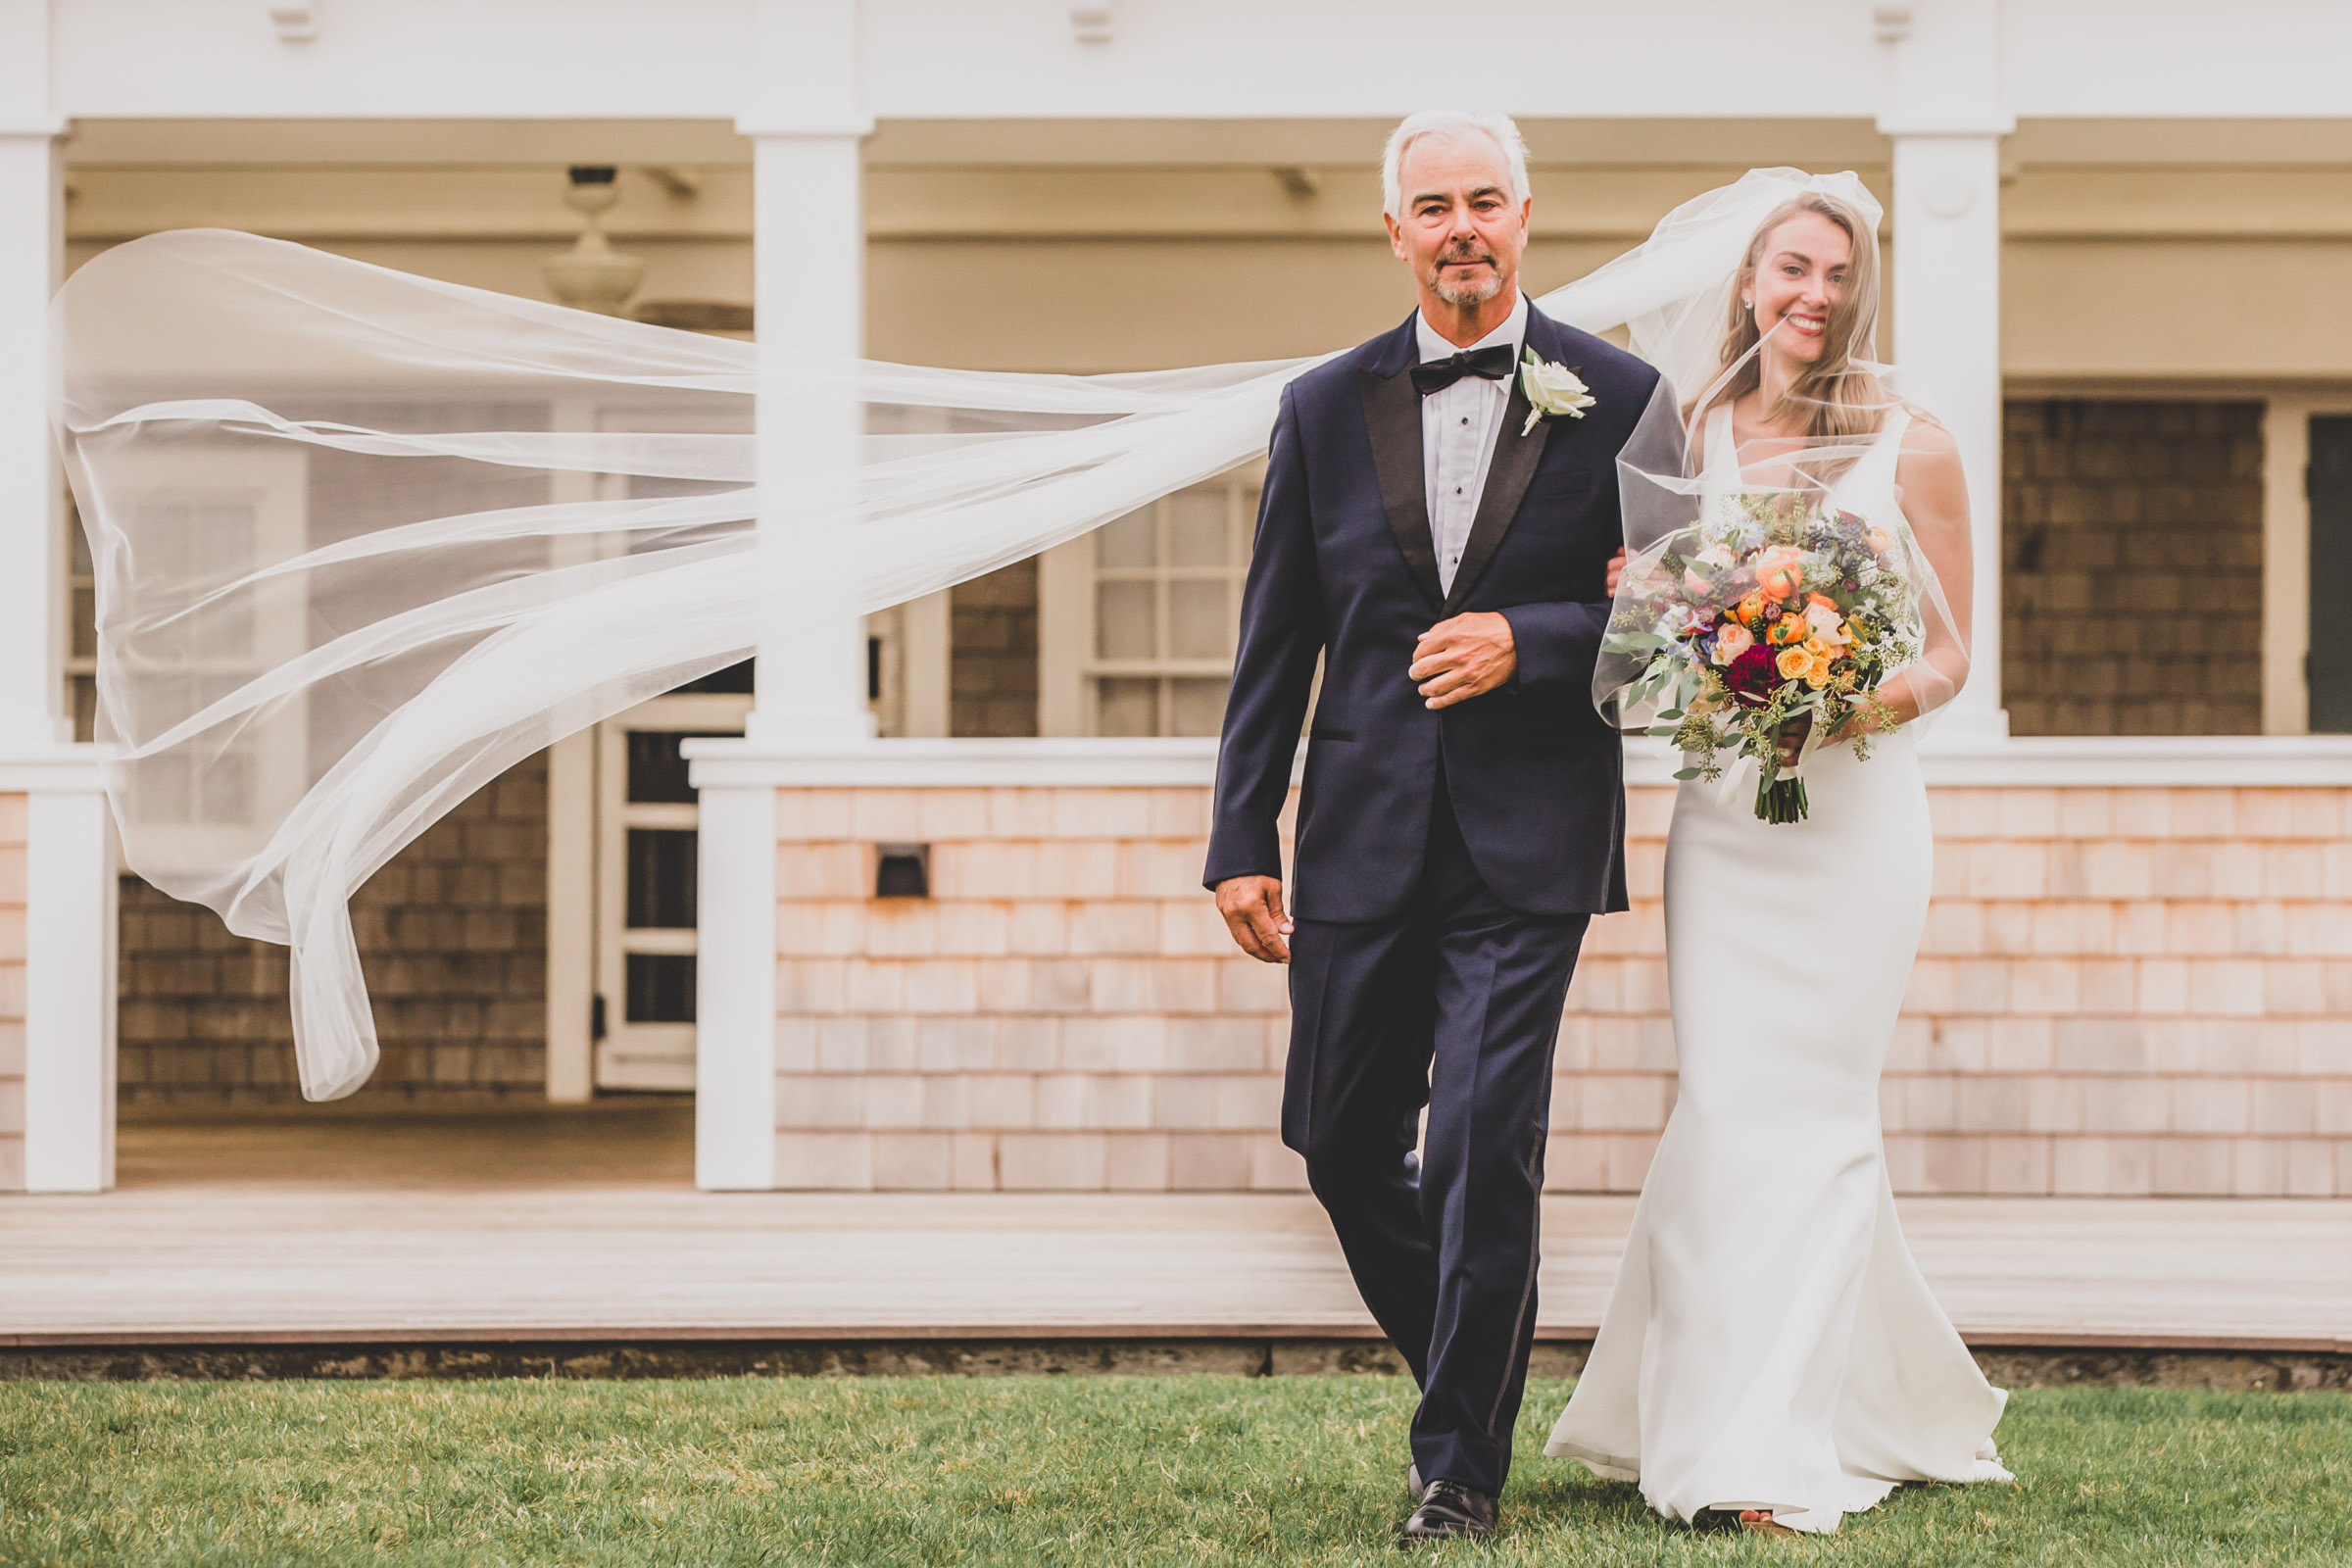 Bride links arms with father - photo by Katie Kaizer Photography